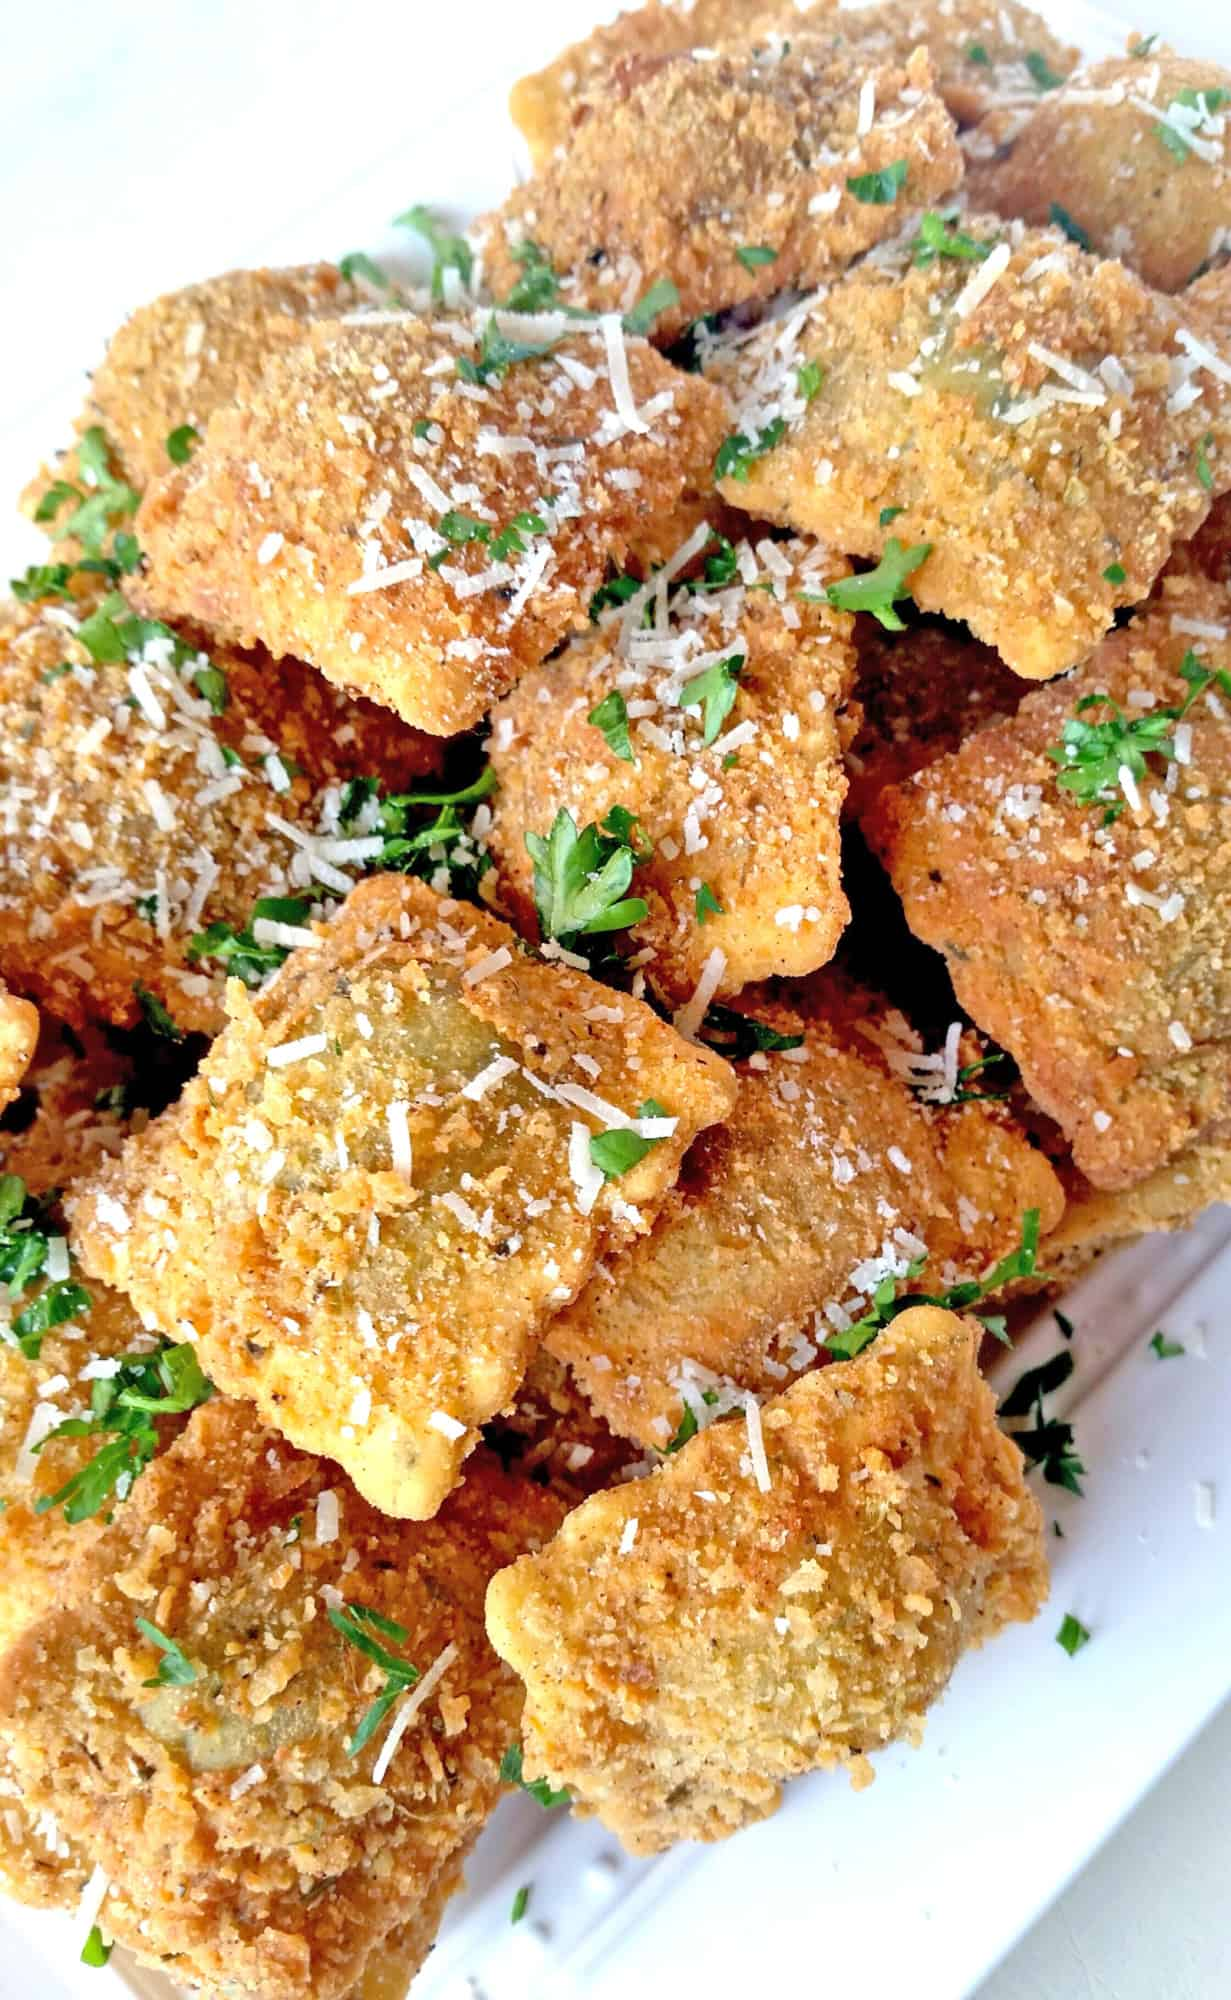 Fried Ravioli with Sun Dried Tomato and Parmesan Marinara